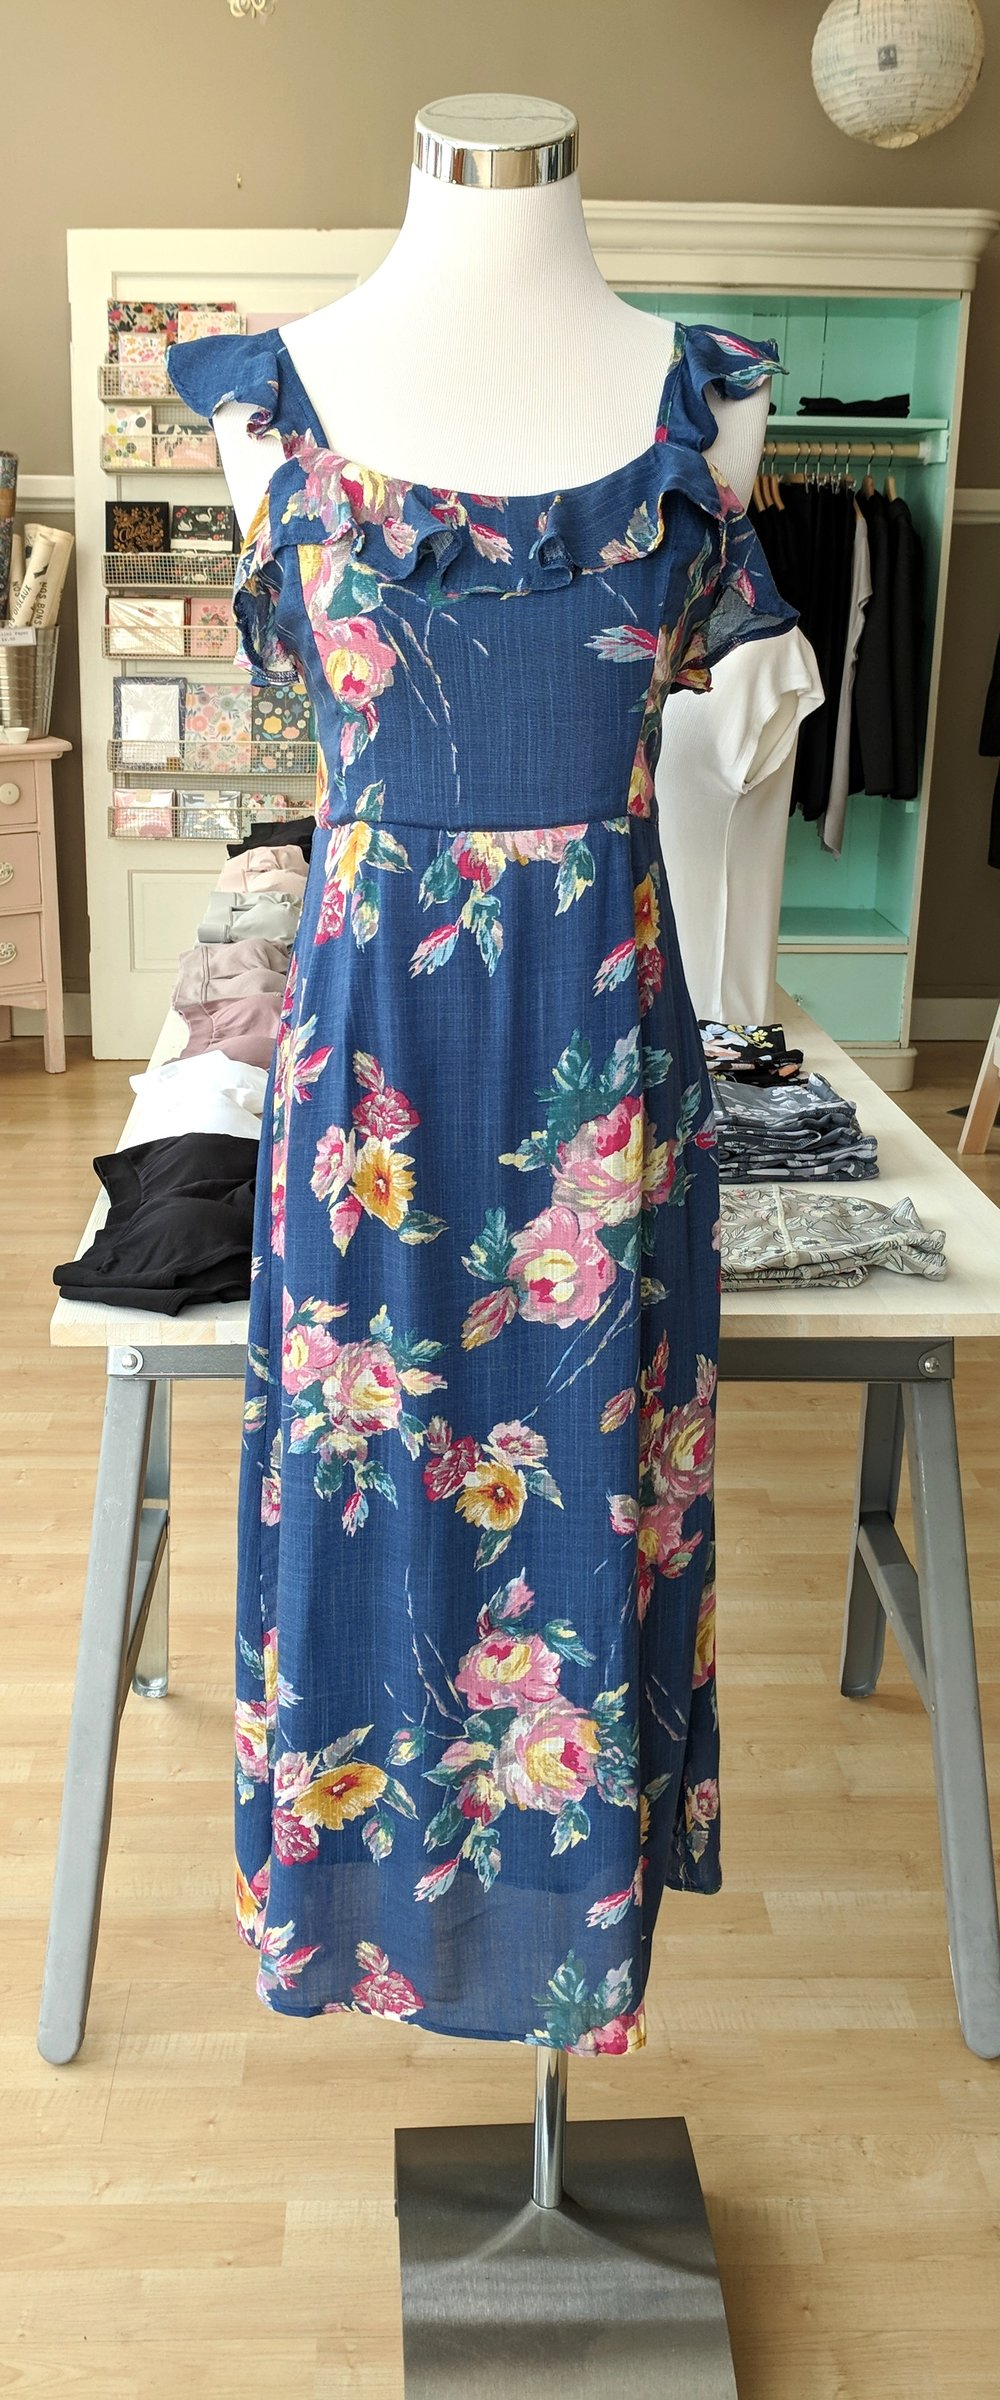 Blue floral midi dress with tie back $64